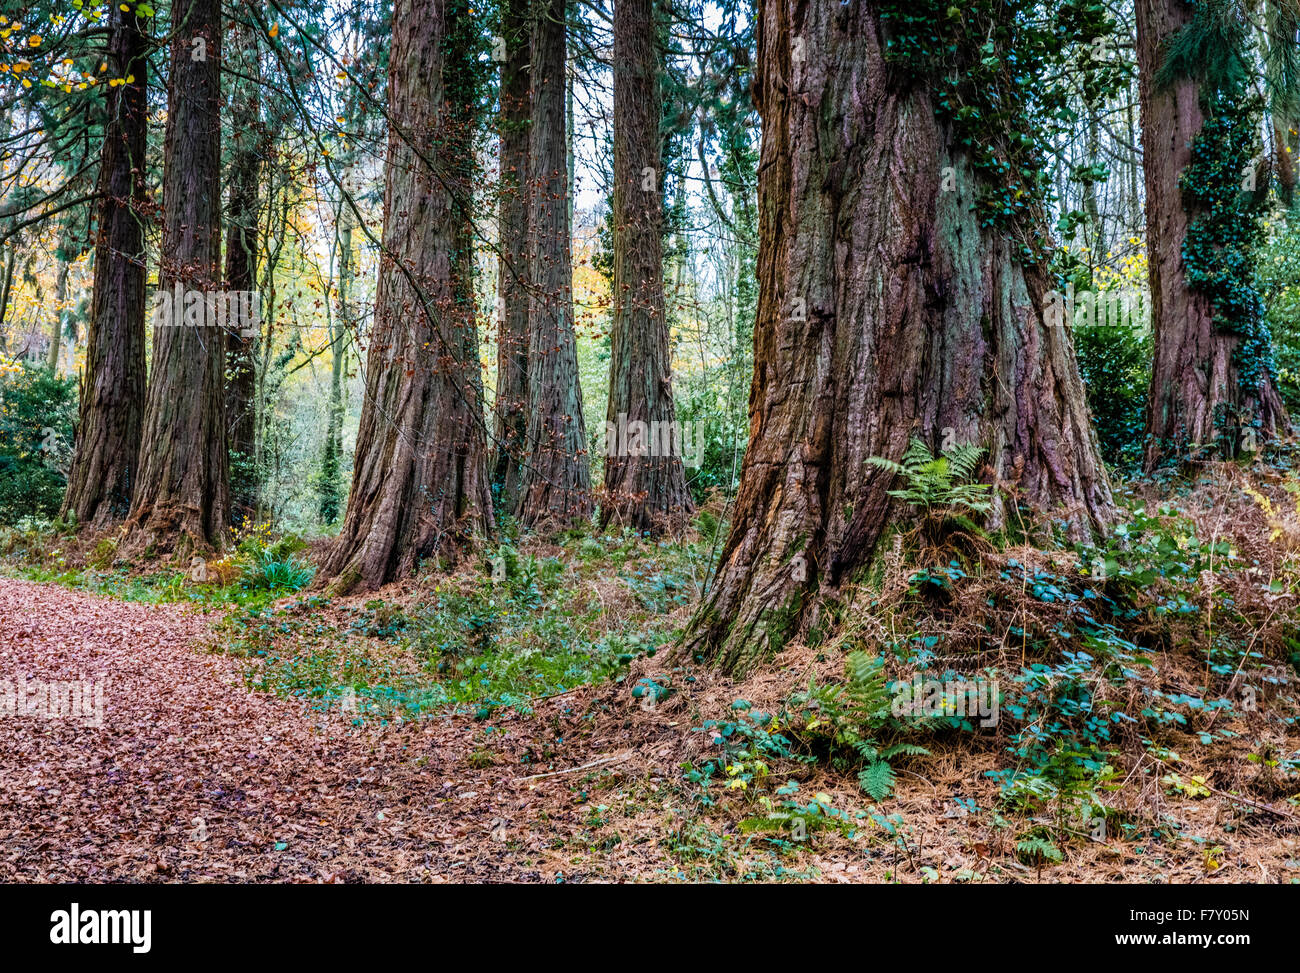 Giant Trees  Redwood Grove in Ashton Hill Plantation near Bristol UK - Stock Image